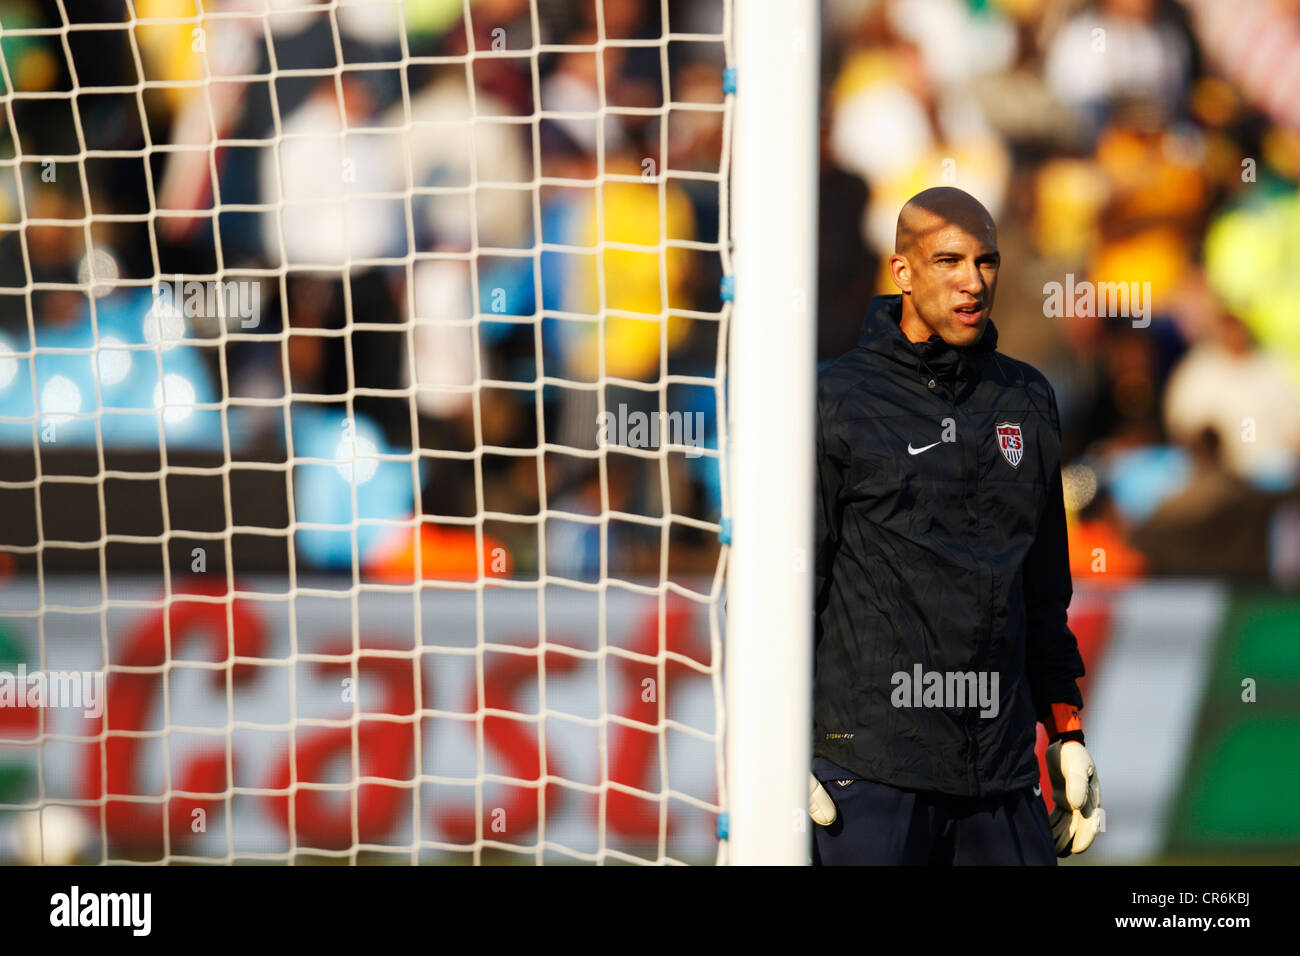 Goalkeeper Tim Howard of the United States warms up before a 2010 FIFA World Cup soccer match against Algeria. - Stock Image